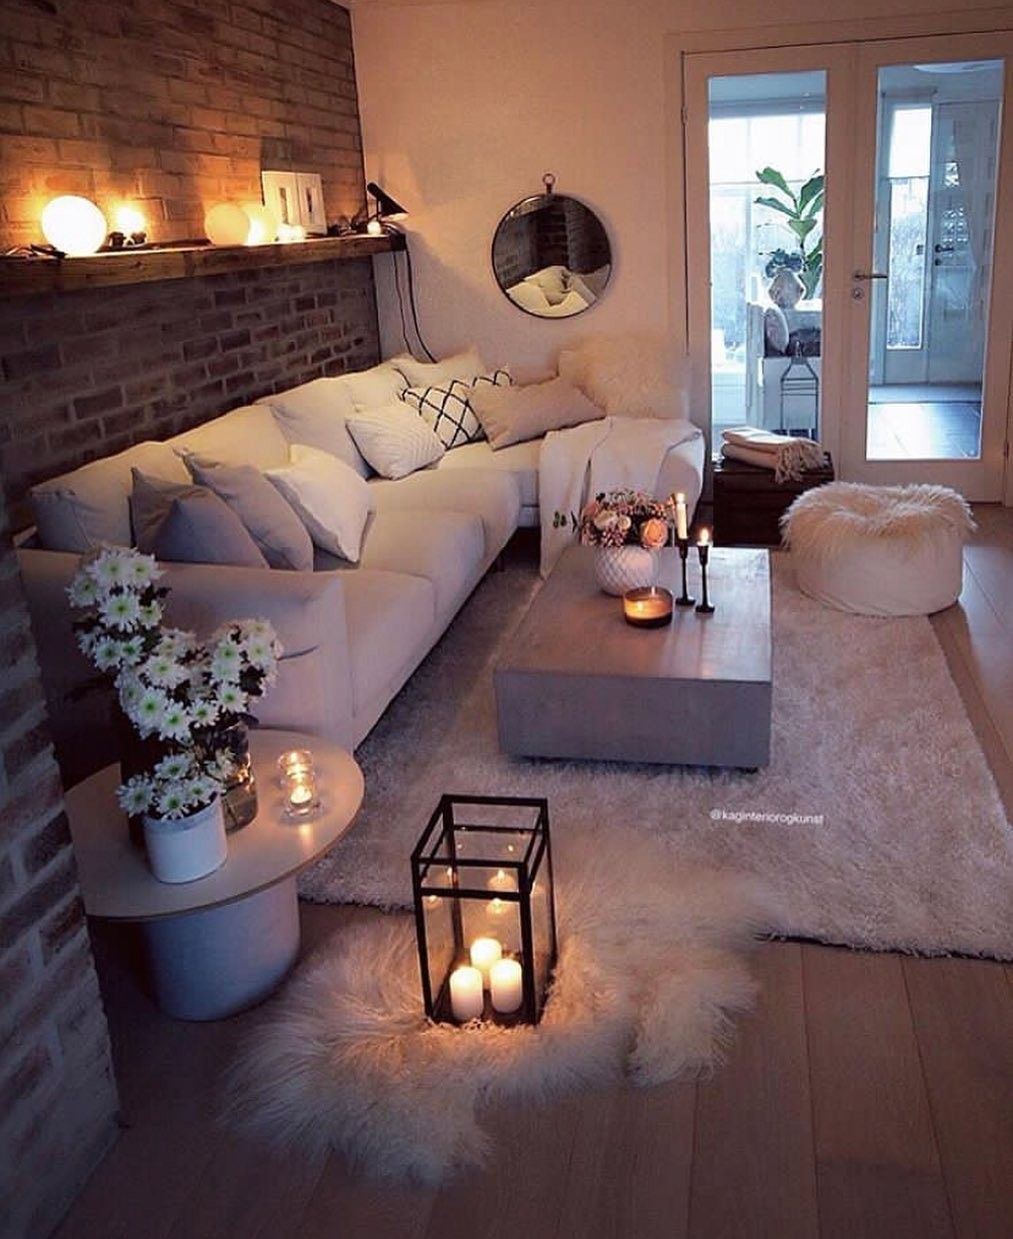 Photo of #lounge ideas cozy Bedroom decor and ideas # bedroom #cosy #decor #ideas #lounge